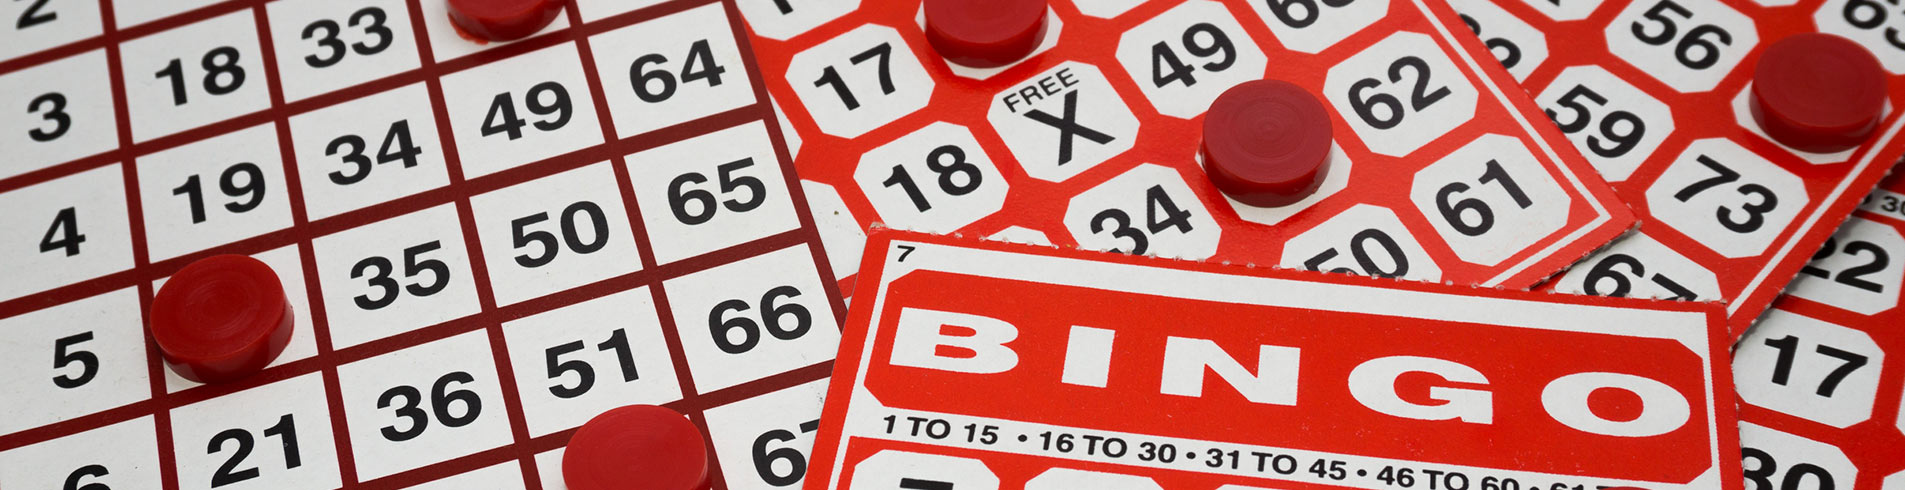 Bingo Fundraiser : May 7, 2018